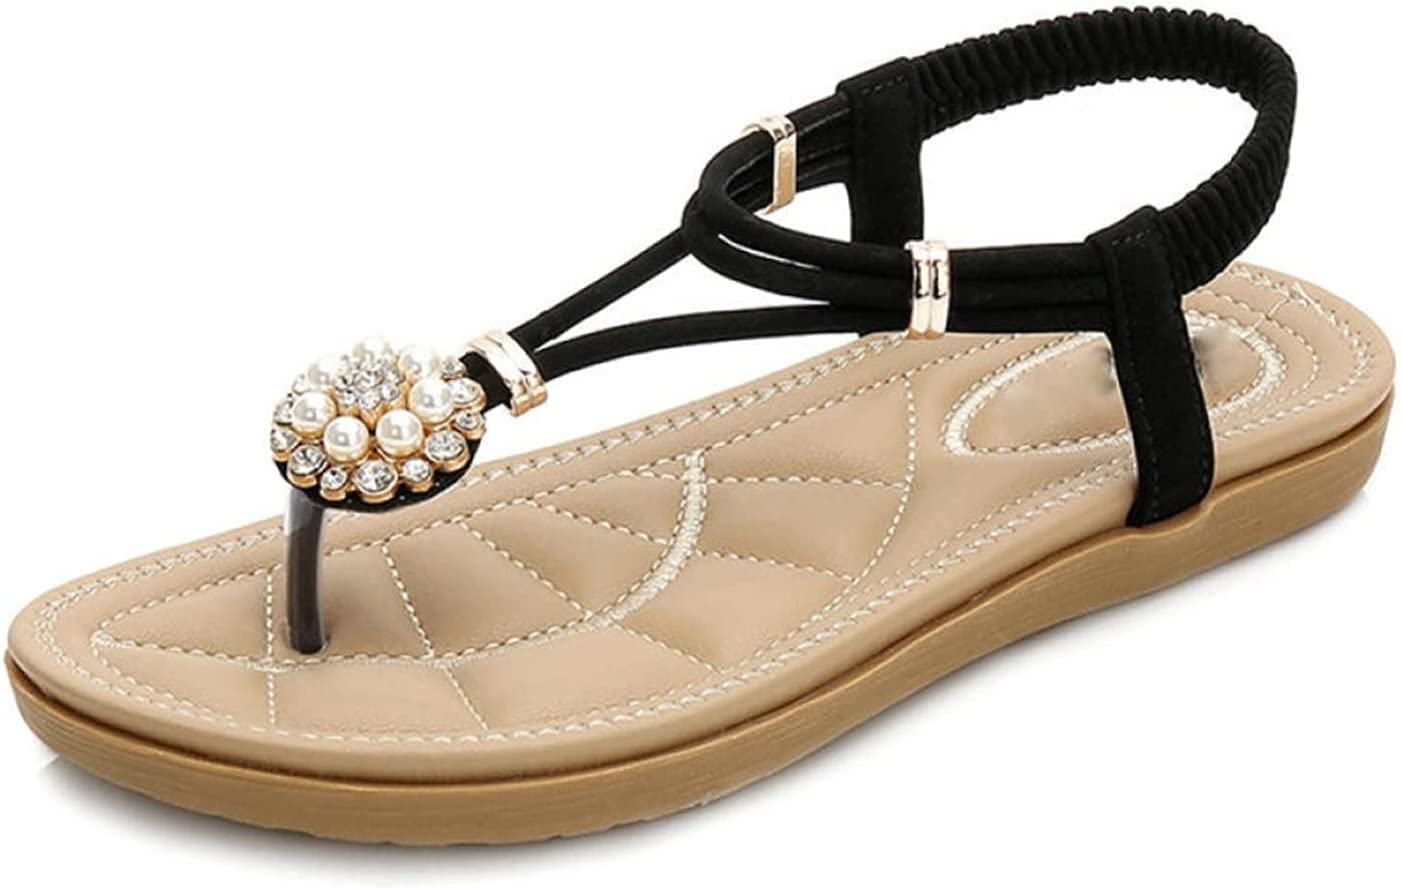 LYNLYN Sandals Fashion Leather Ladies Sandals Bohemian Beaded Slippers Ladies Flats Summer Beach Sandals Ladies Sandals (Color : Black, Size : 8)